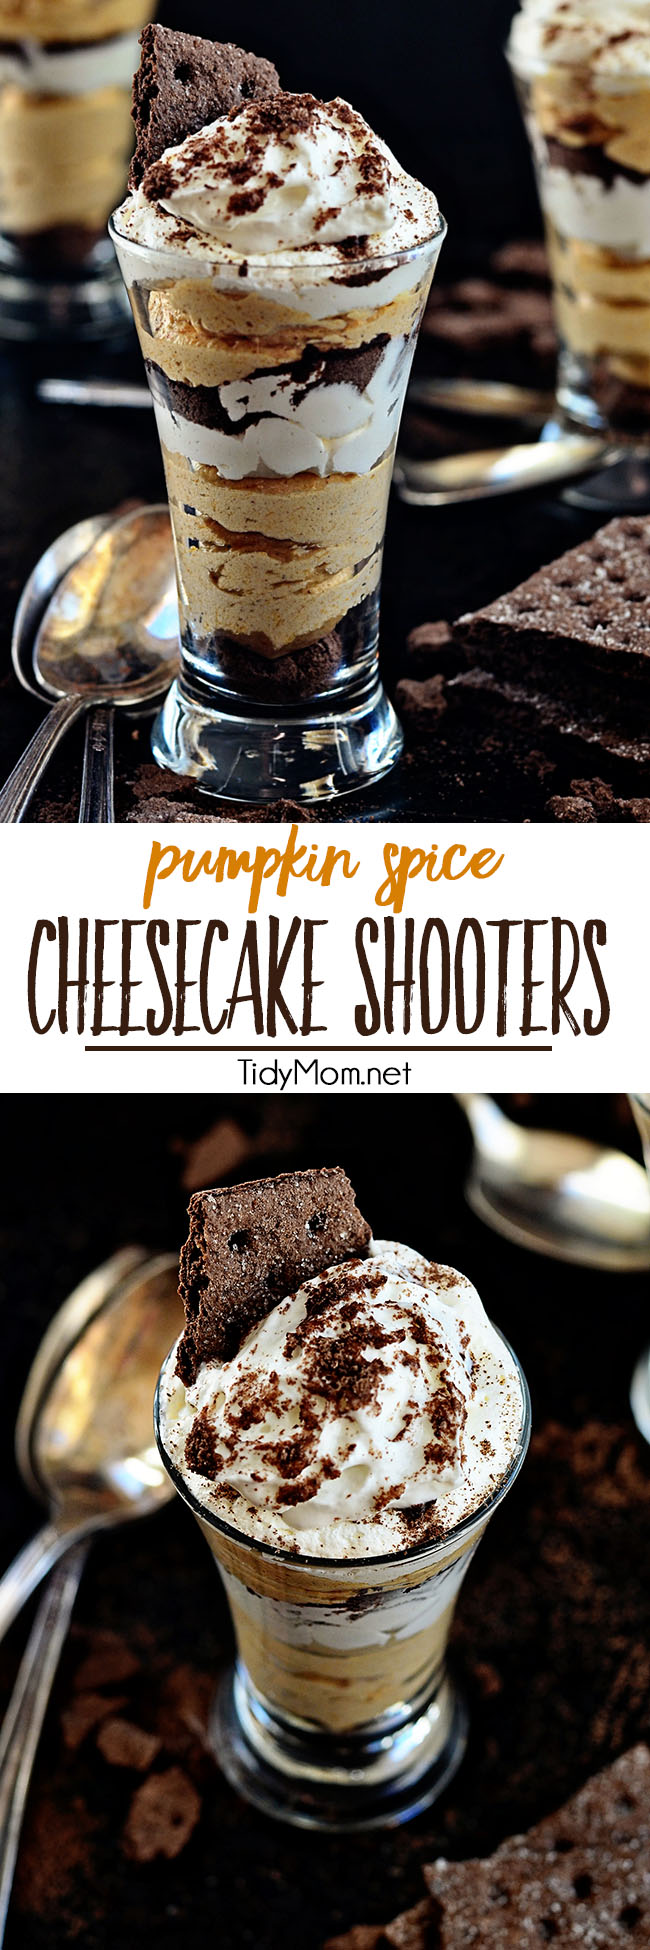 A shot of no-bake Pumpkin Spice Cheesecake with a chocolate graham cracker crust and whipped topping for the perfect fall dessert. Get the recipe at TidyMom.net #pumpkin #dessert #cheesecake #nobake